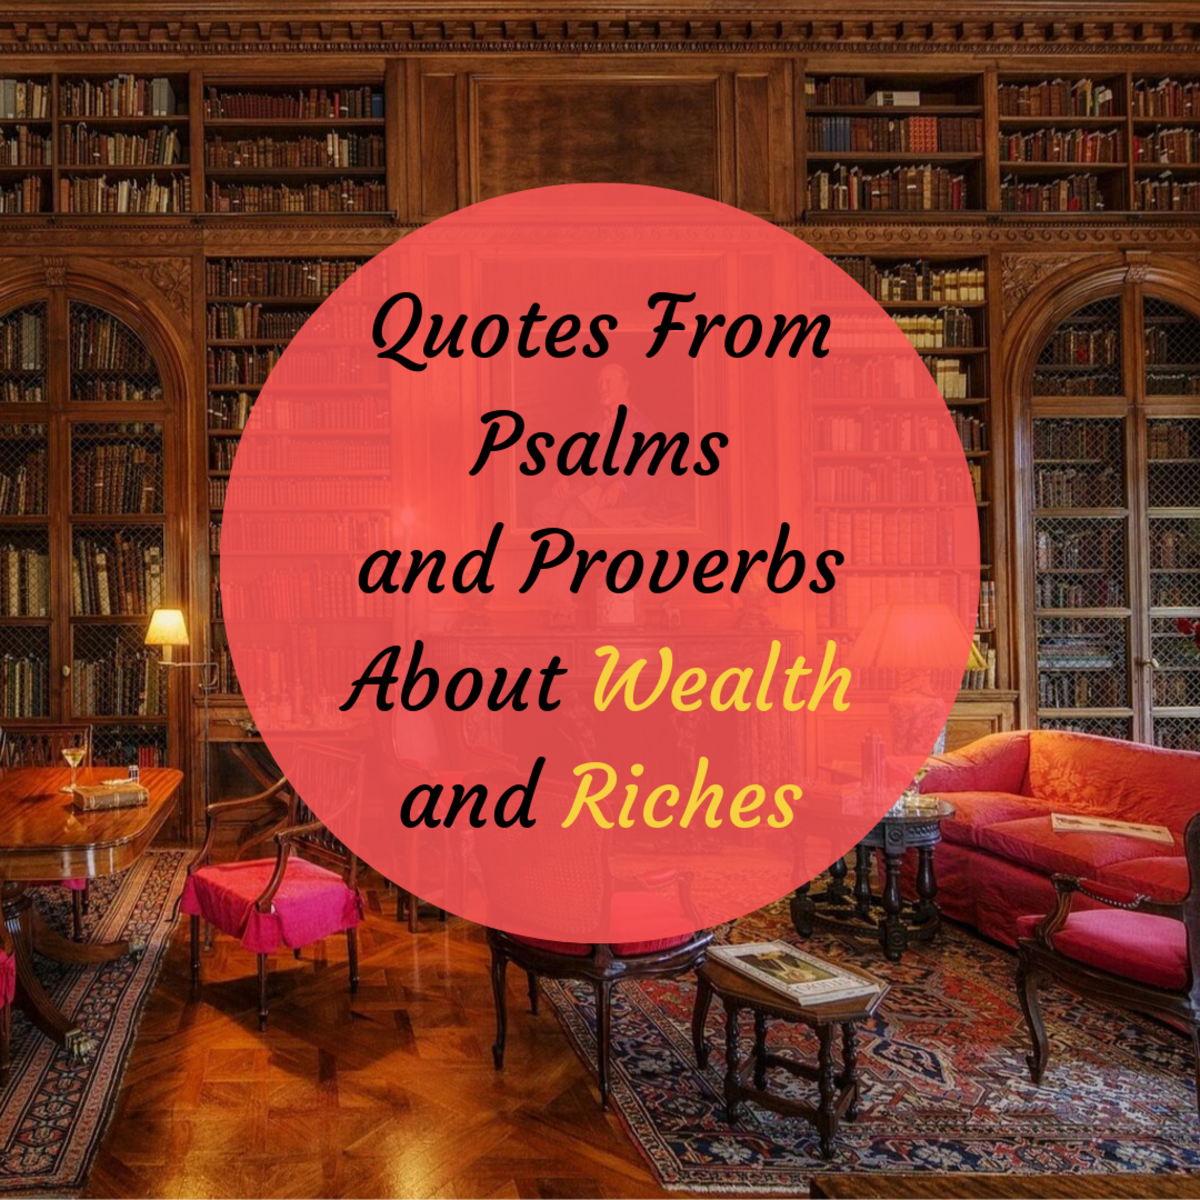 Quotes on the Secret to Riches and Wealth From Psalms and Proverbs